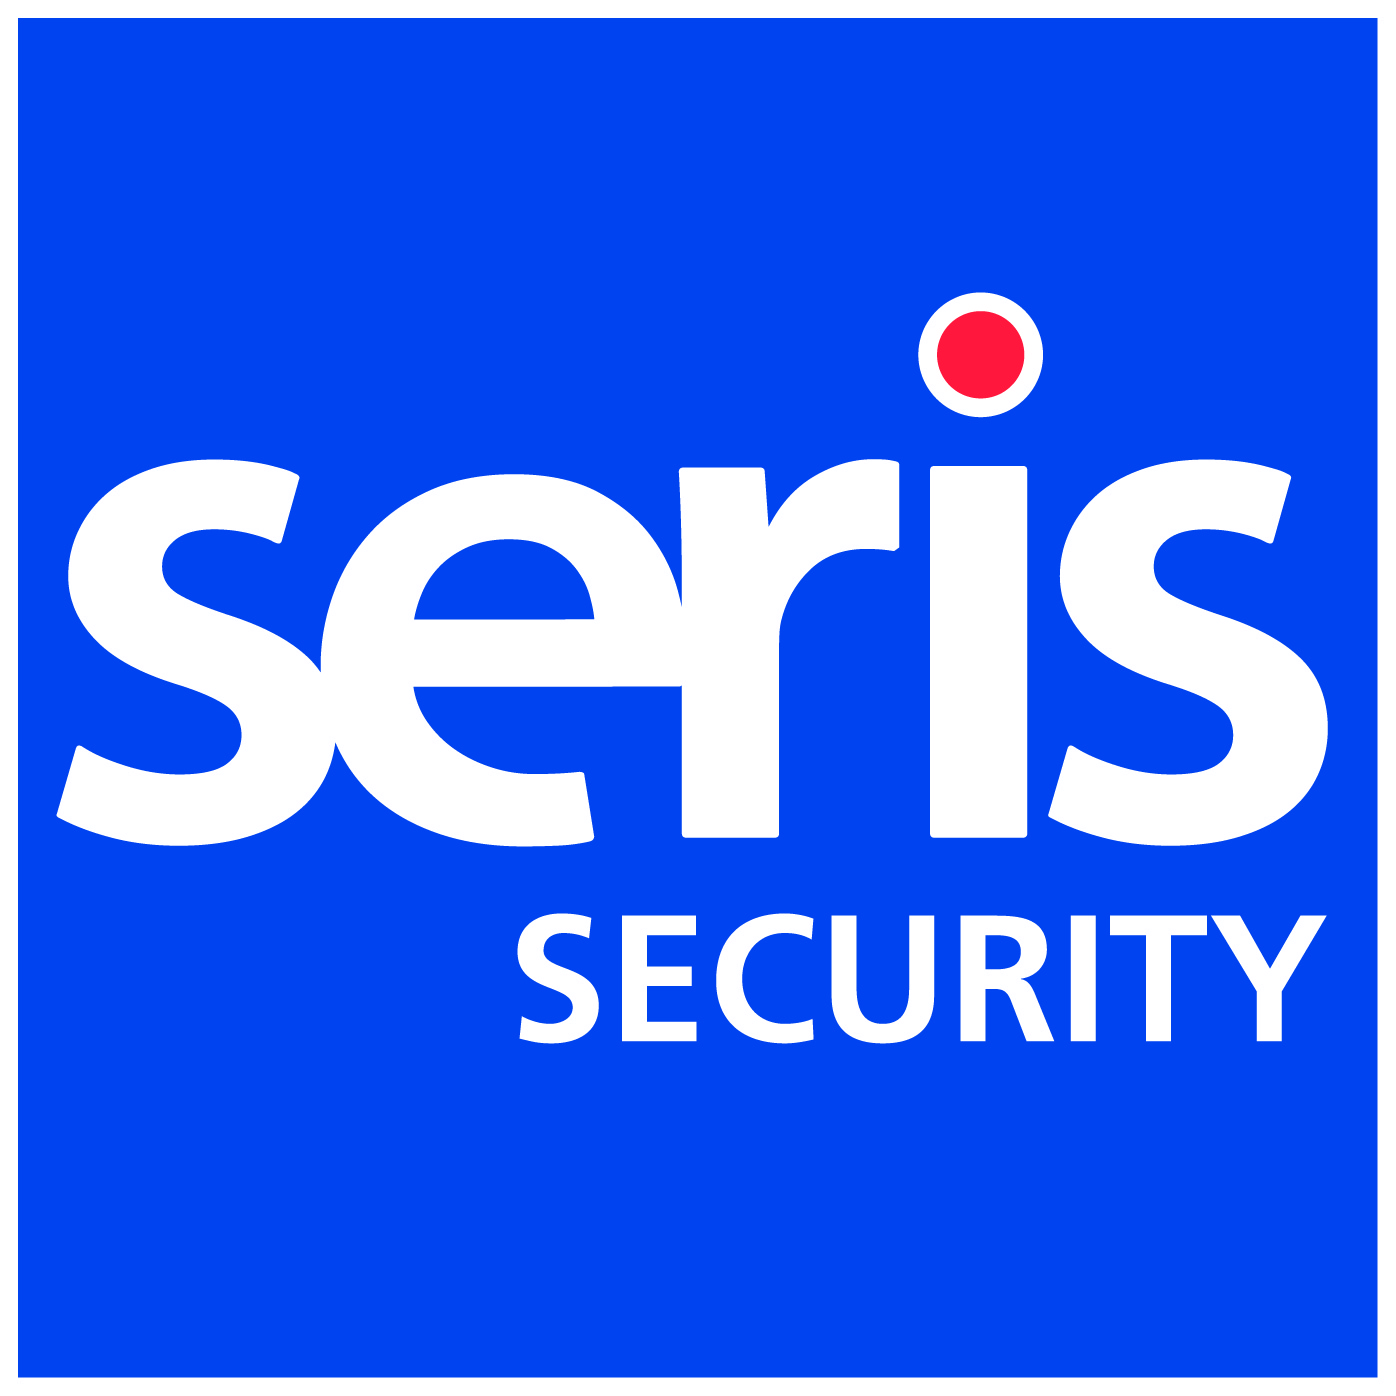 SERIS SECURITY